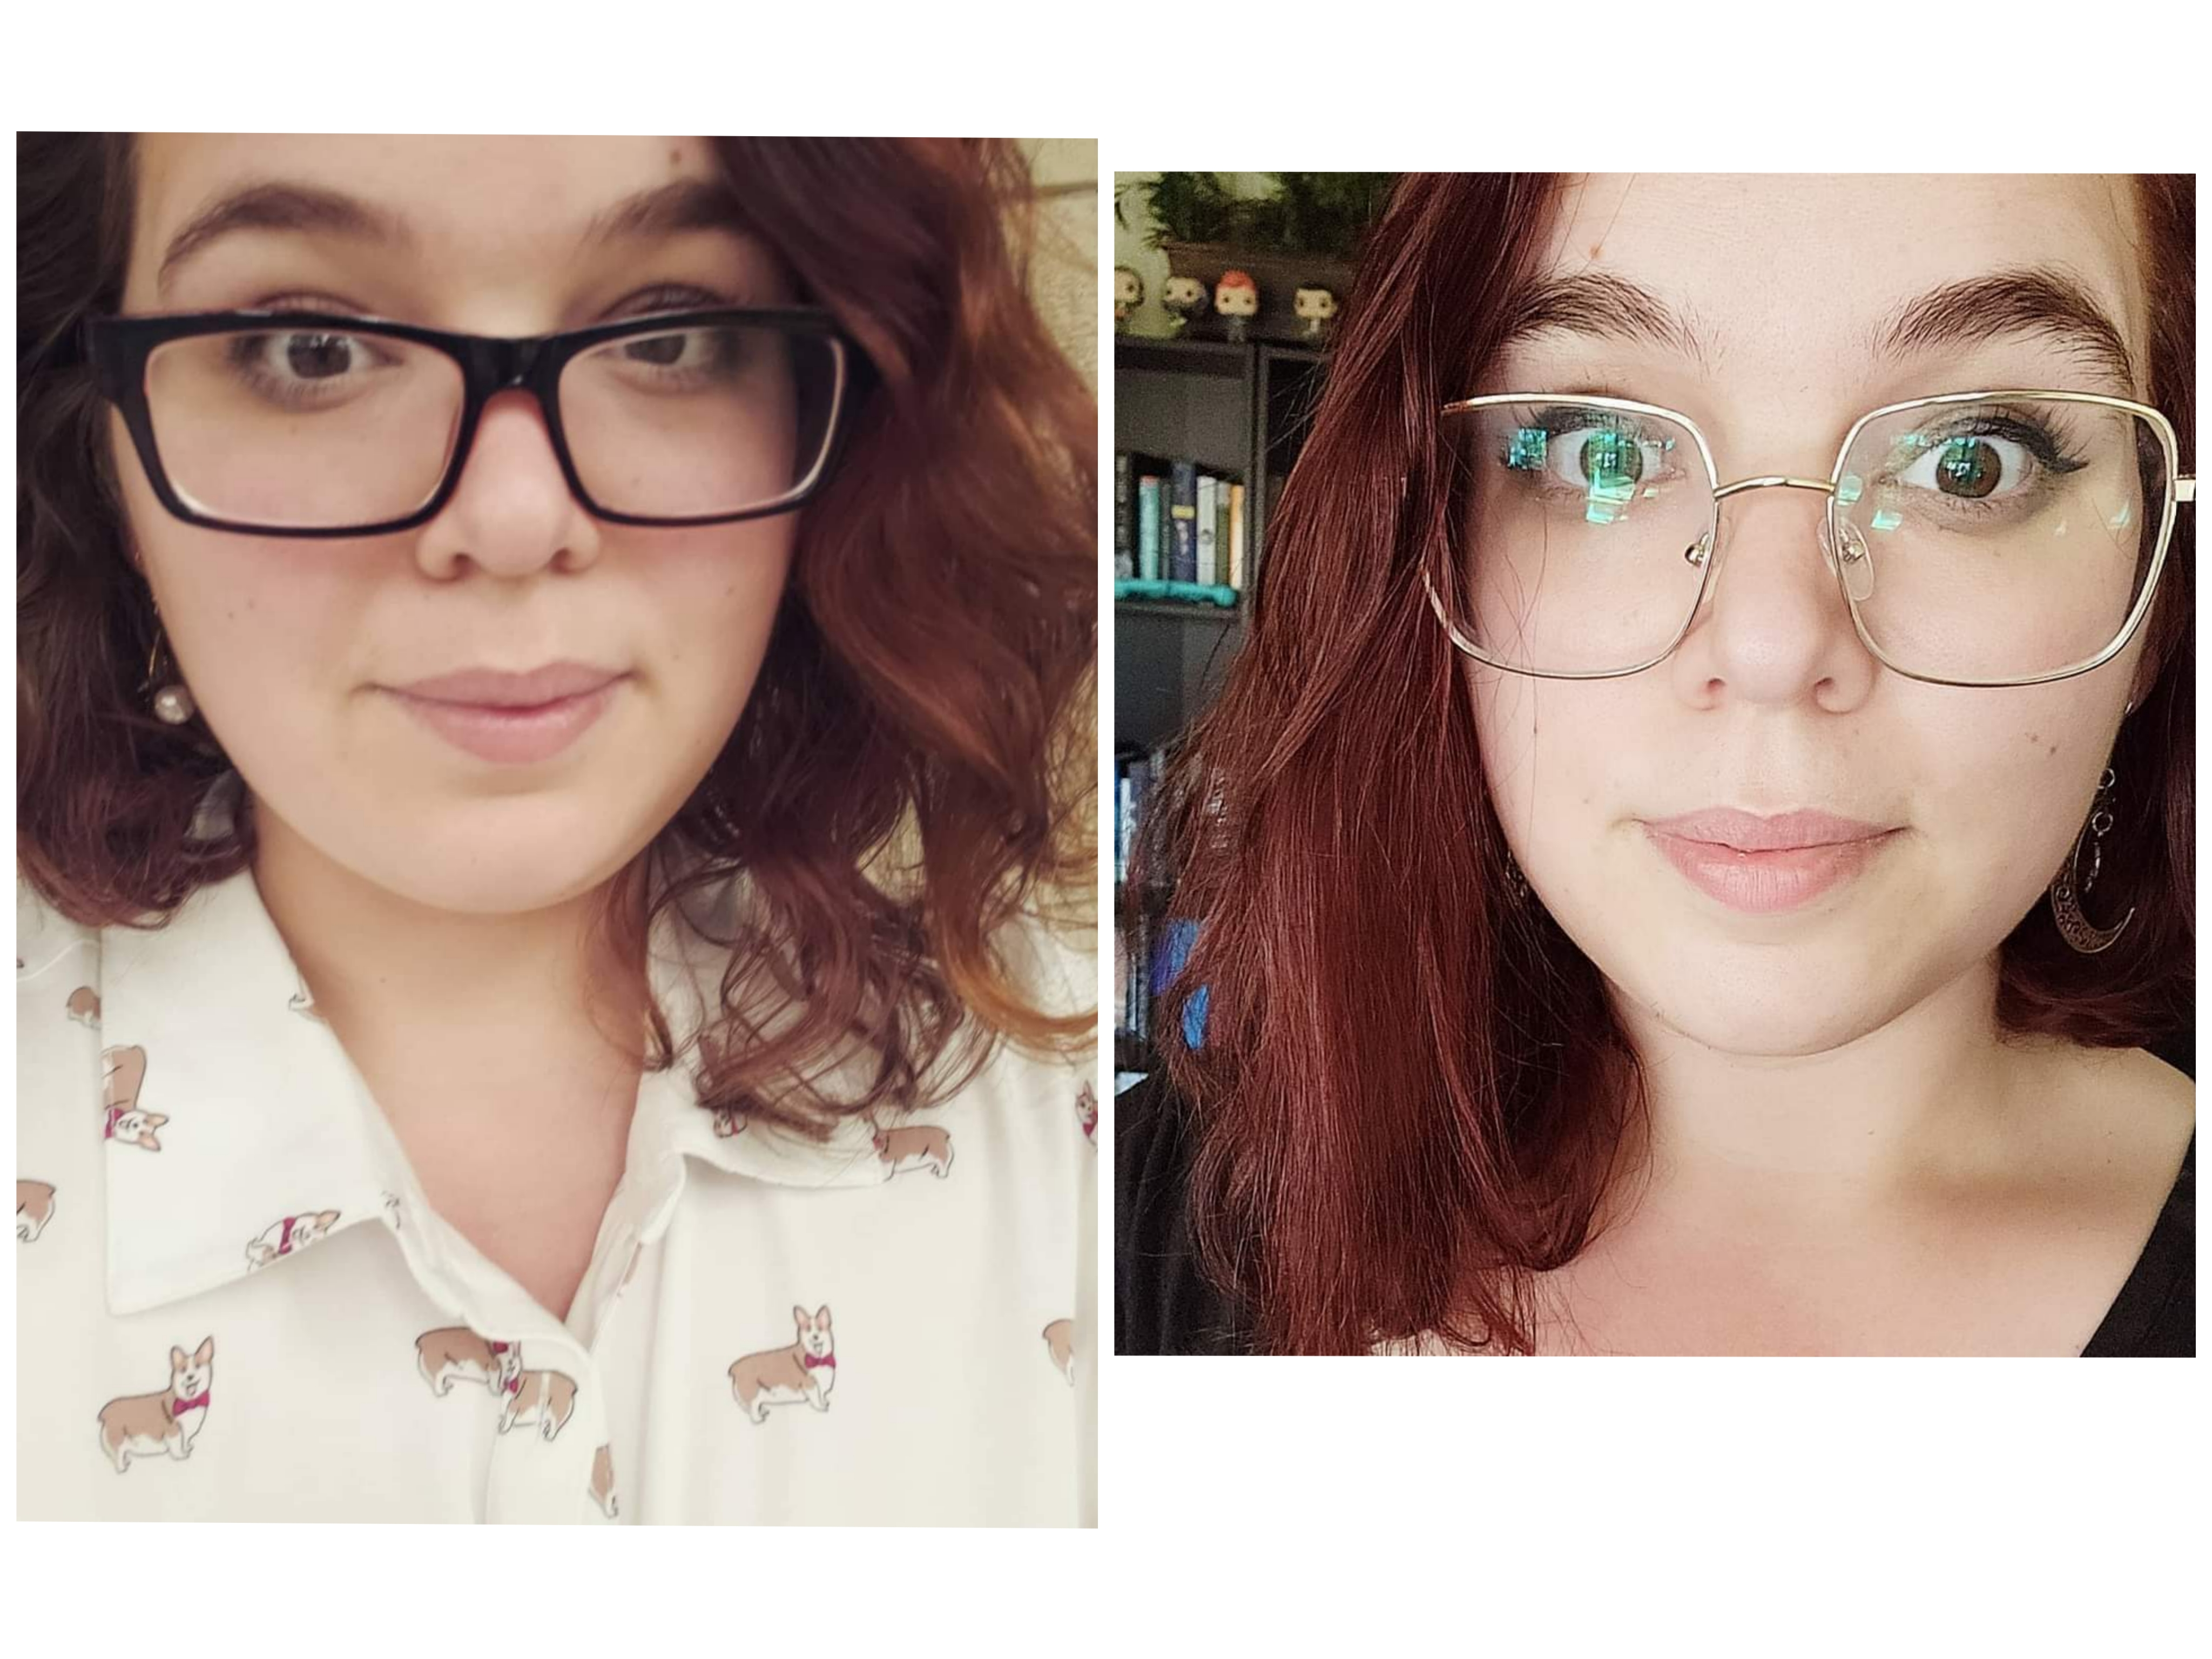 5 foot 4 Female 90 lbs Weight Loss Before and After 300 lbs to 210 lbs